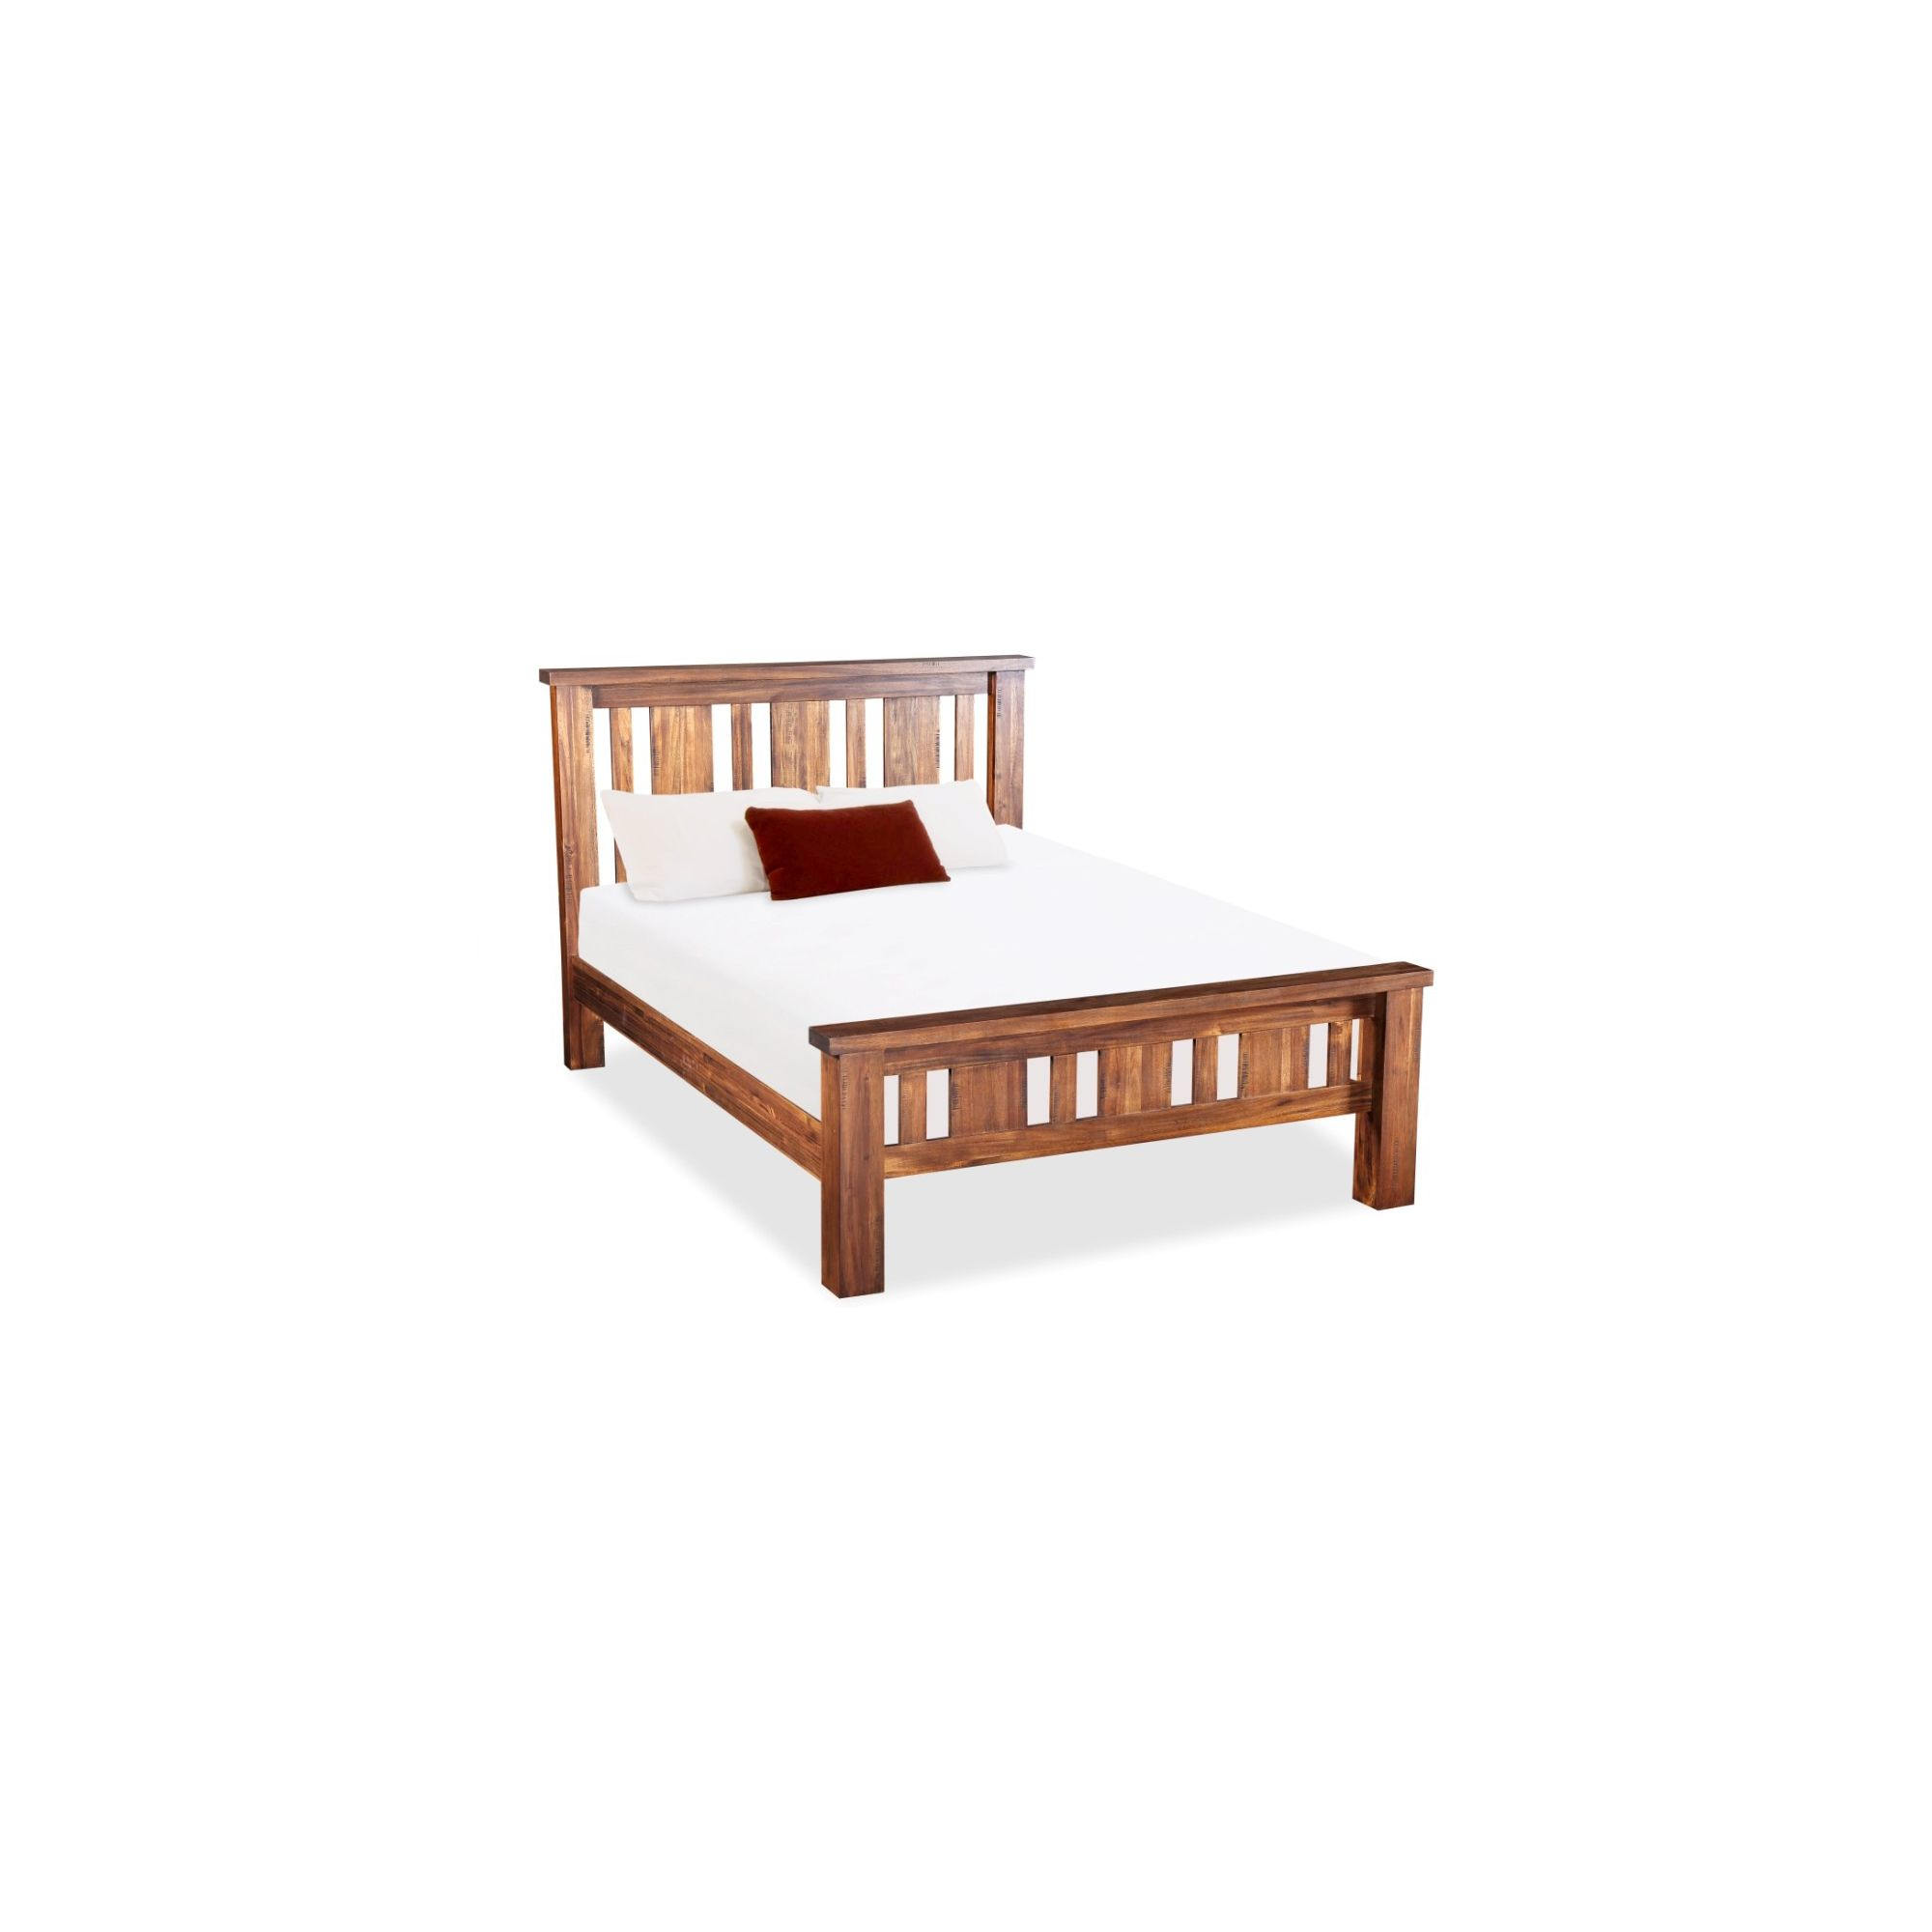 Alterton Furniture Romain Slatted Bed - Double at Tesco Direct